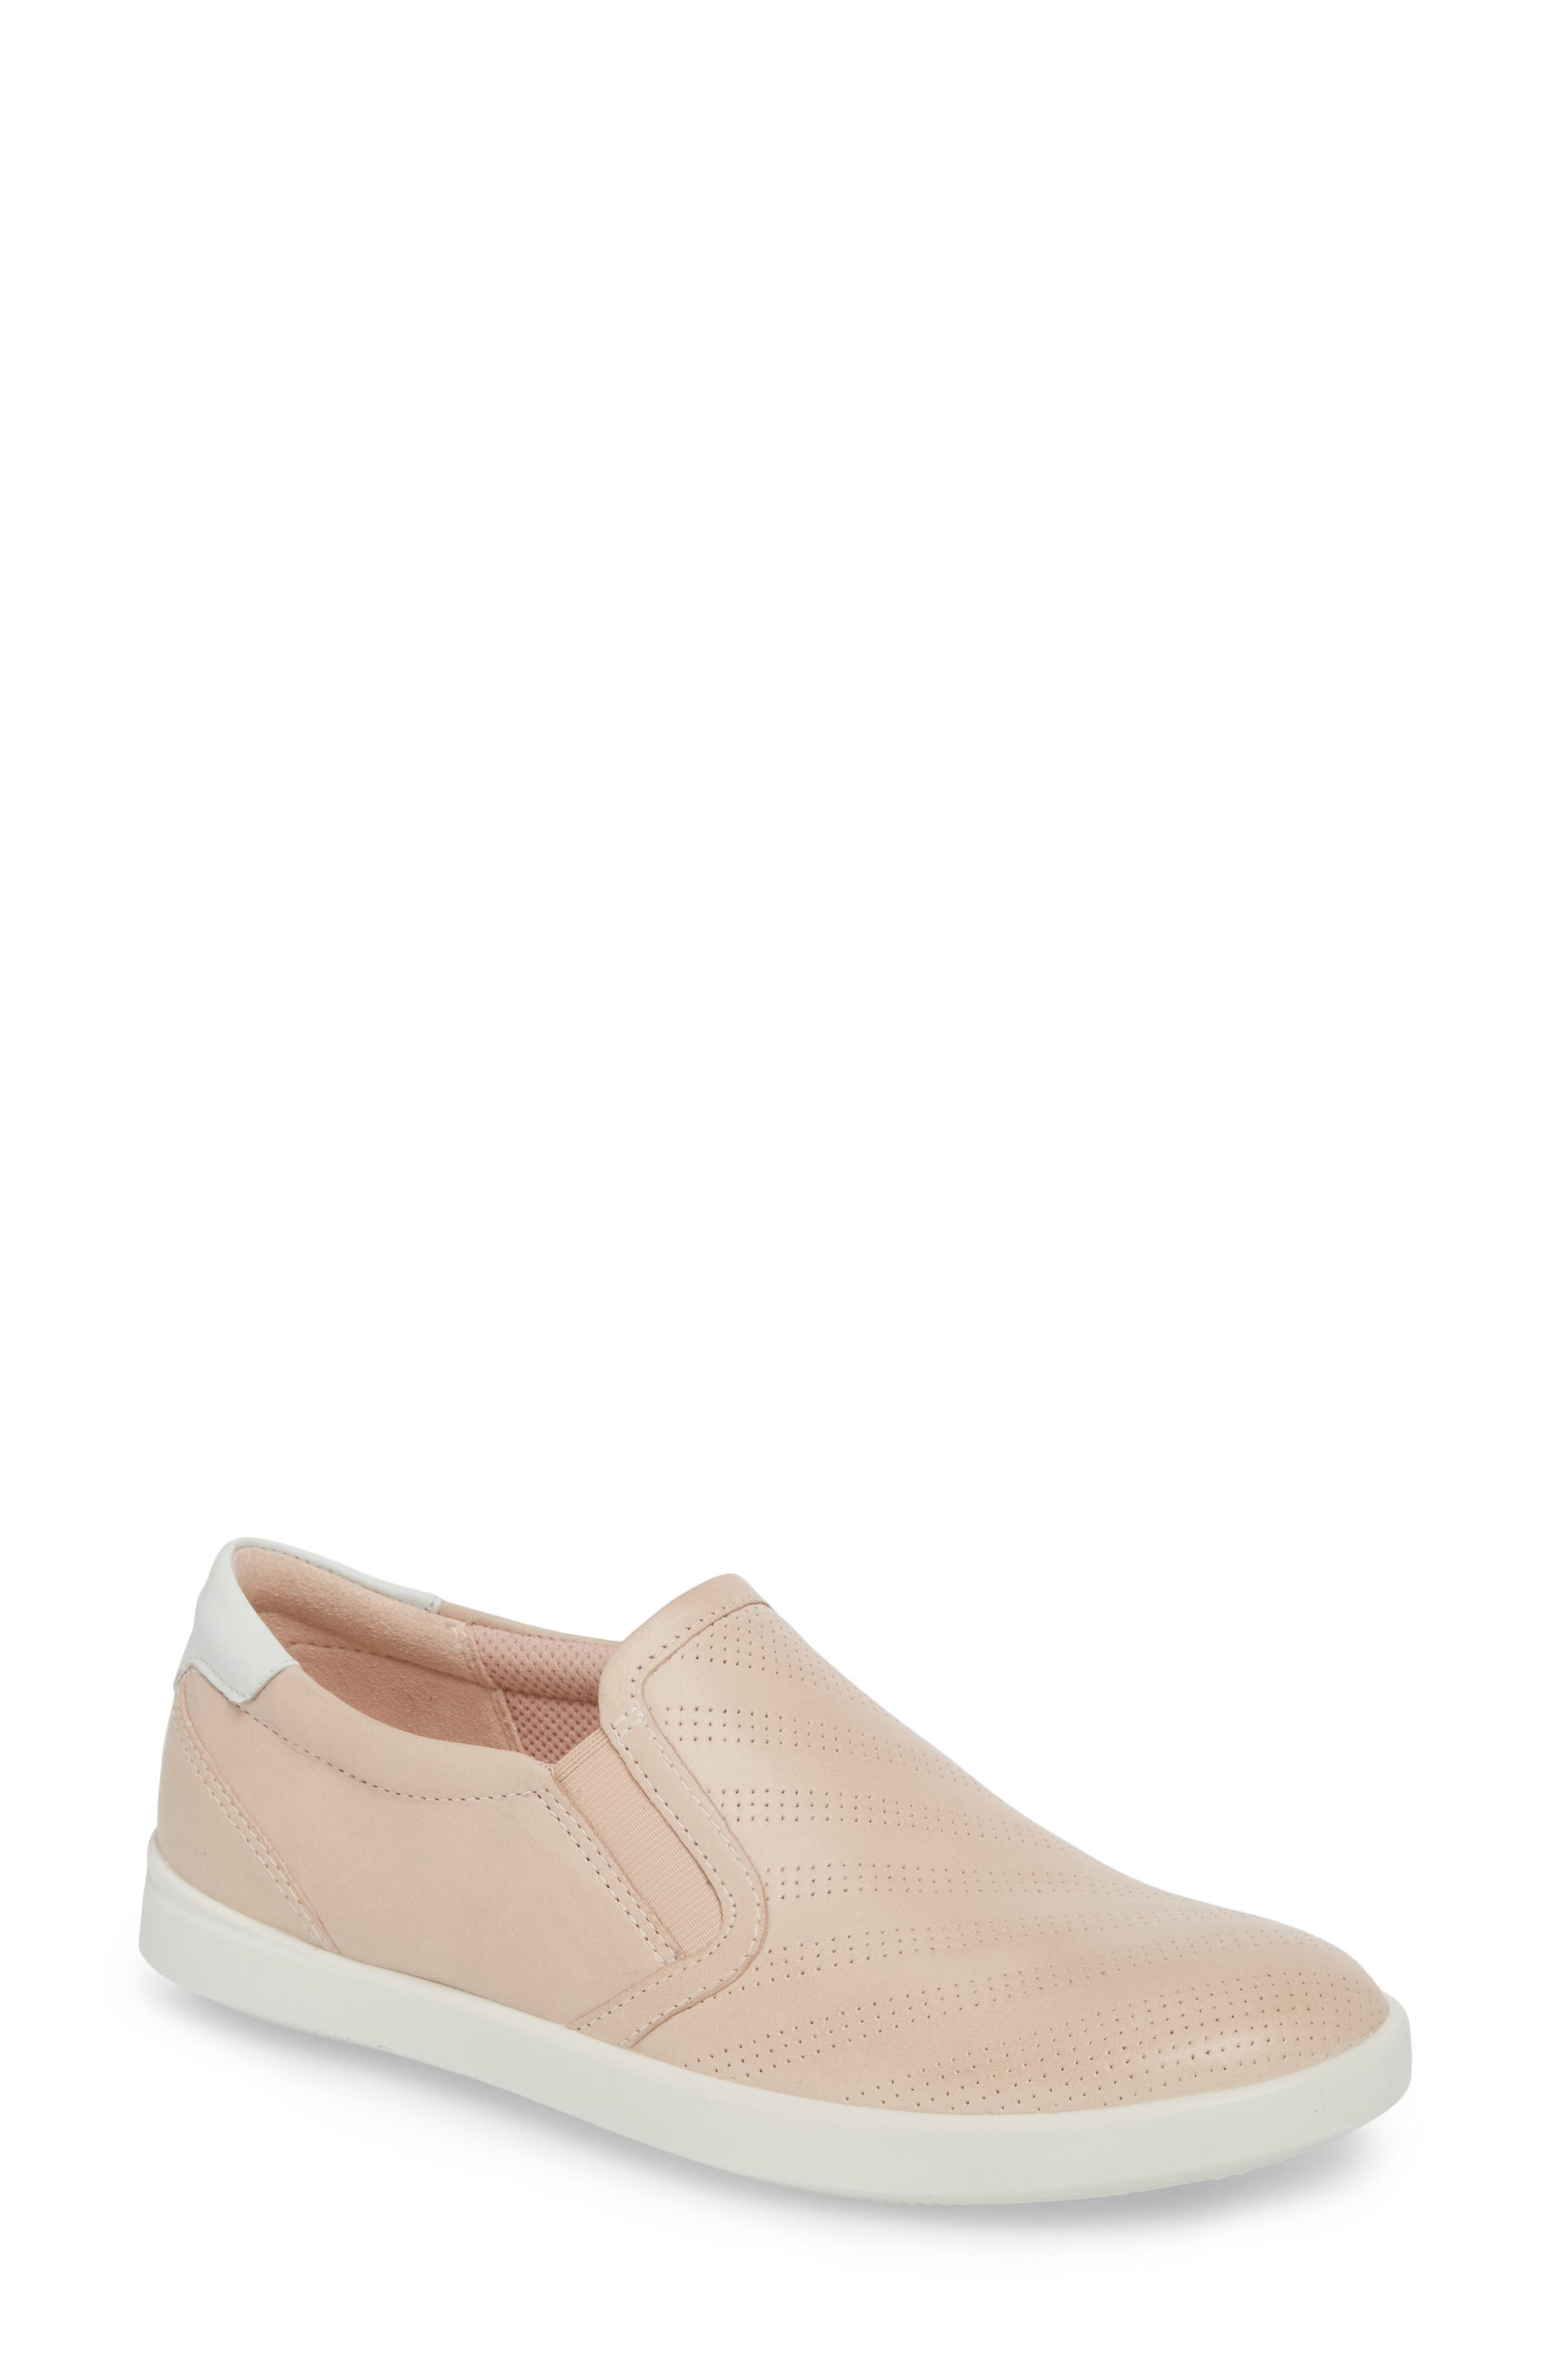 'Aimee' Slip-On Sneaker,                         Main,                         color, Rose Dust Leather